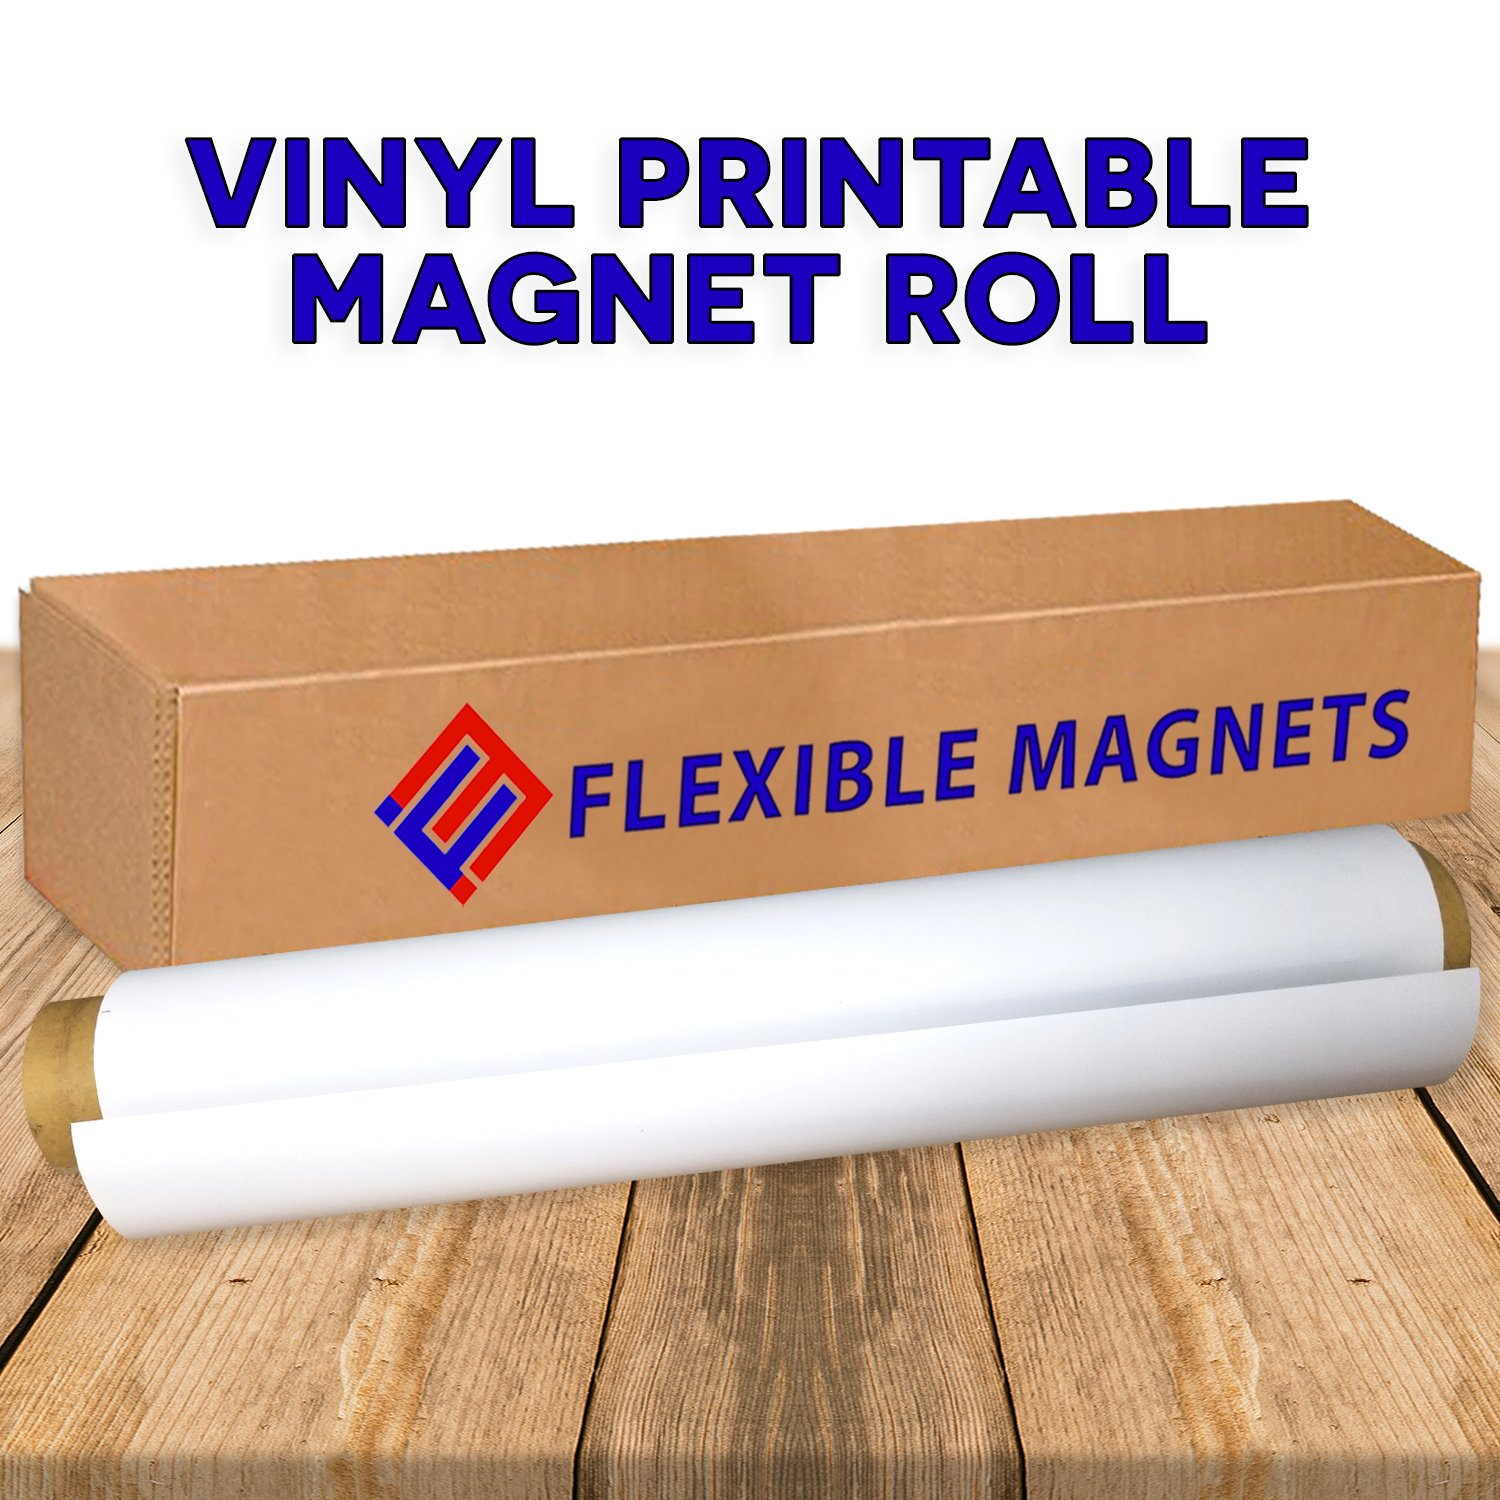 photograph relating to Printable Magnets referred to as Multipurpose Vinyl Roll of Magnet Sheets - Tremendous Effective Preferred for Crafts - Industrial Inkjet Printable (2 toes x 25 toes x 30 mil)